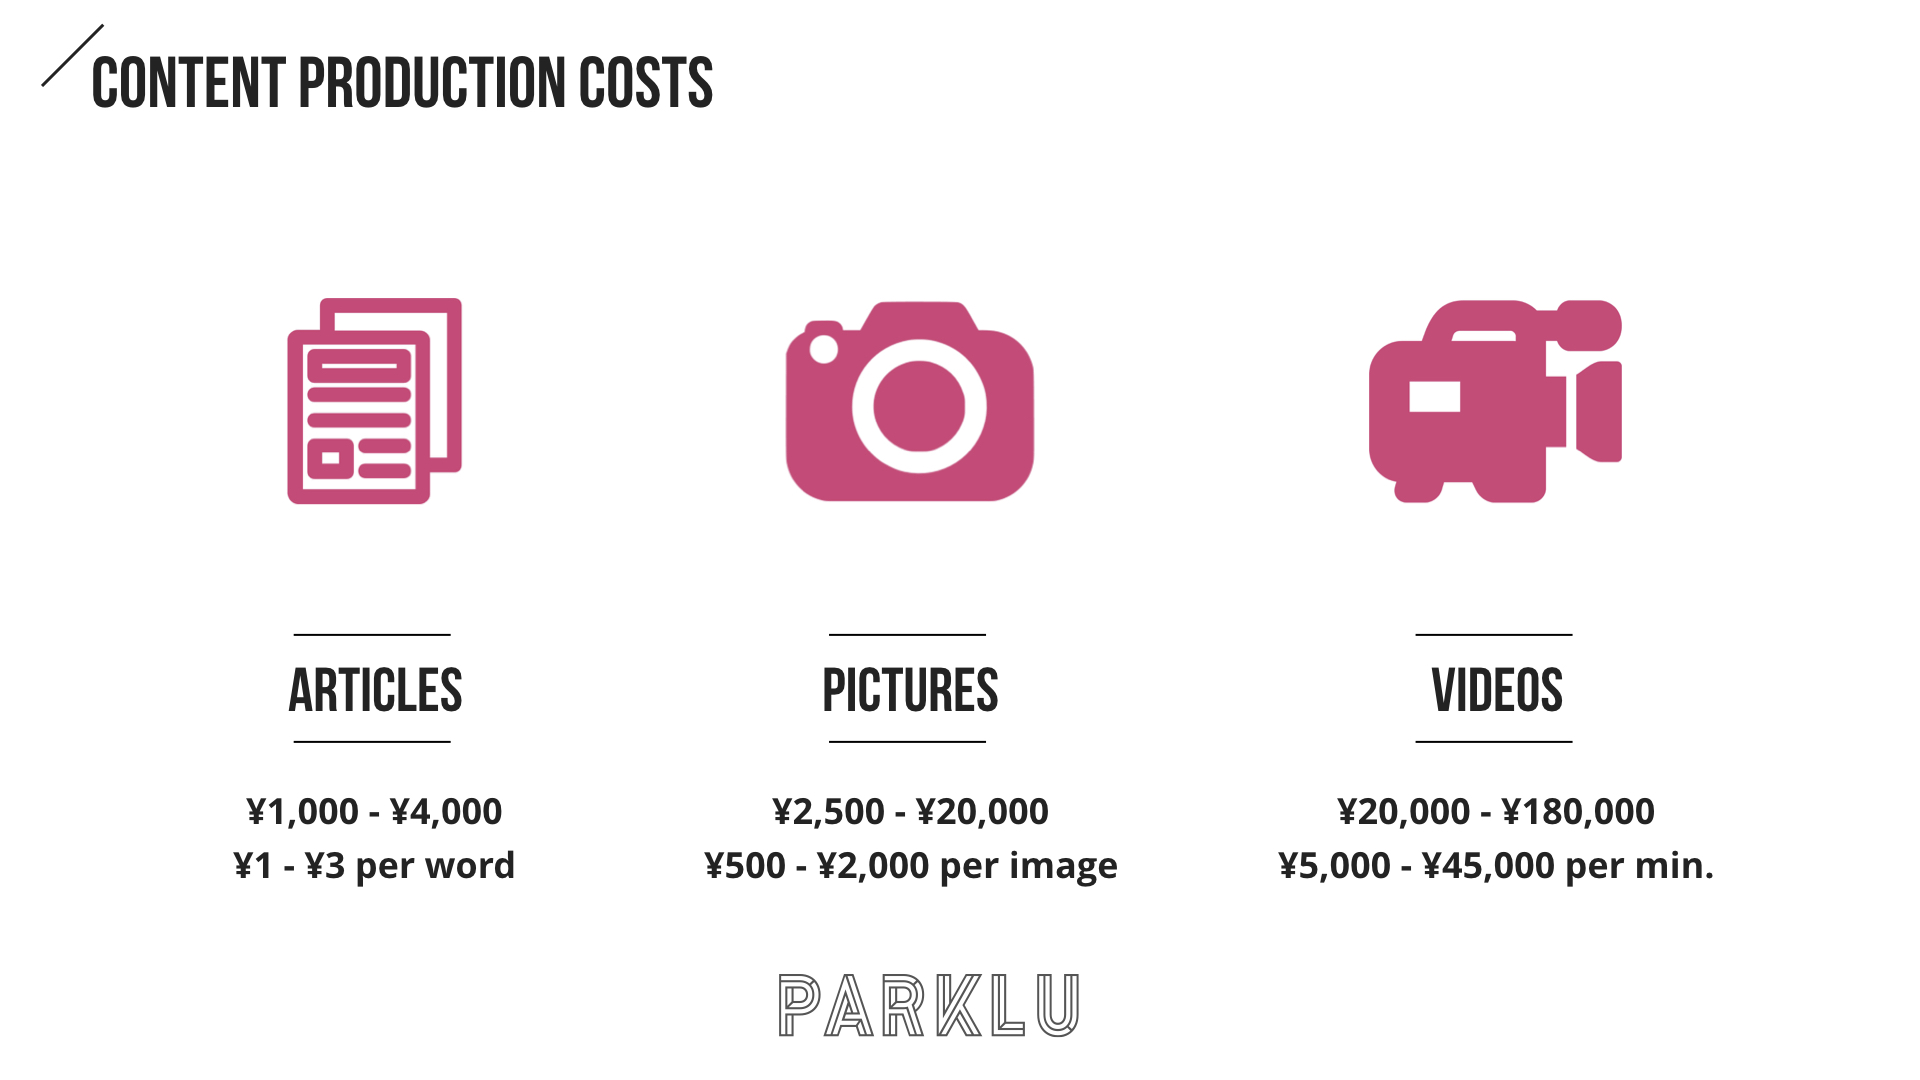 KOL Content Production Costs